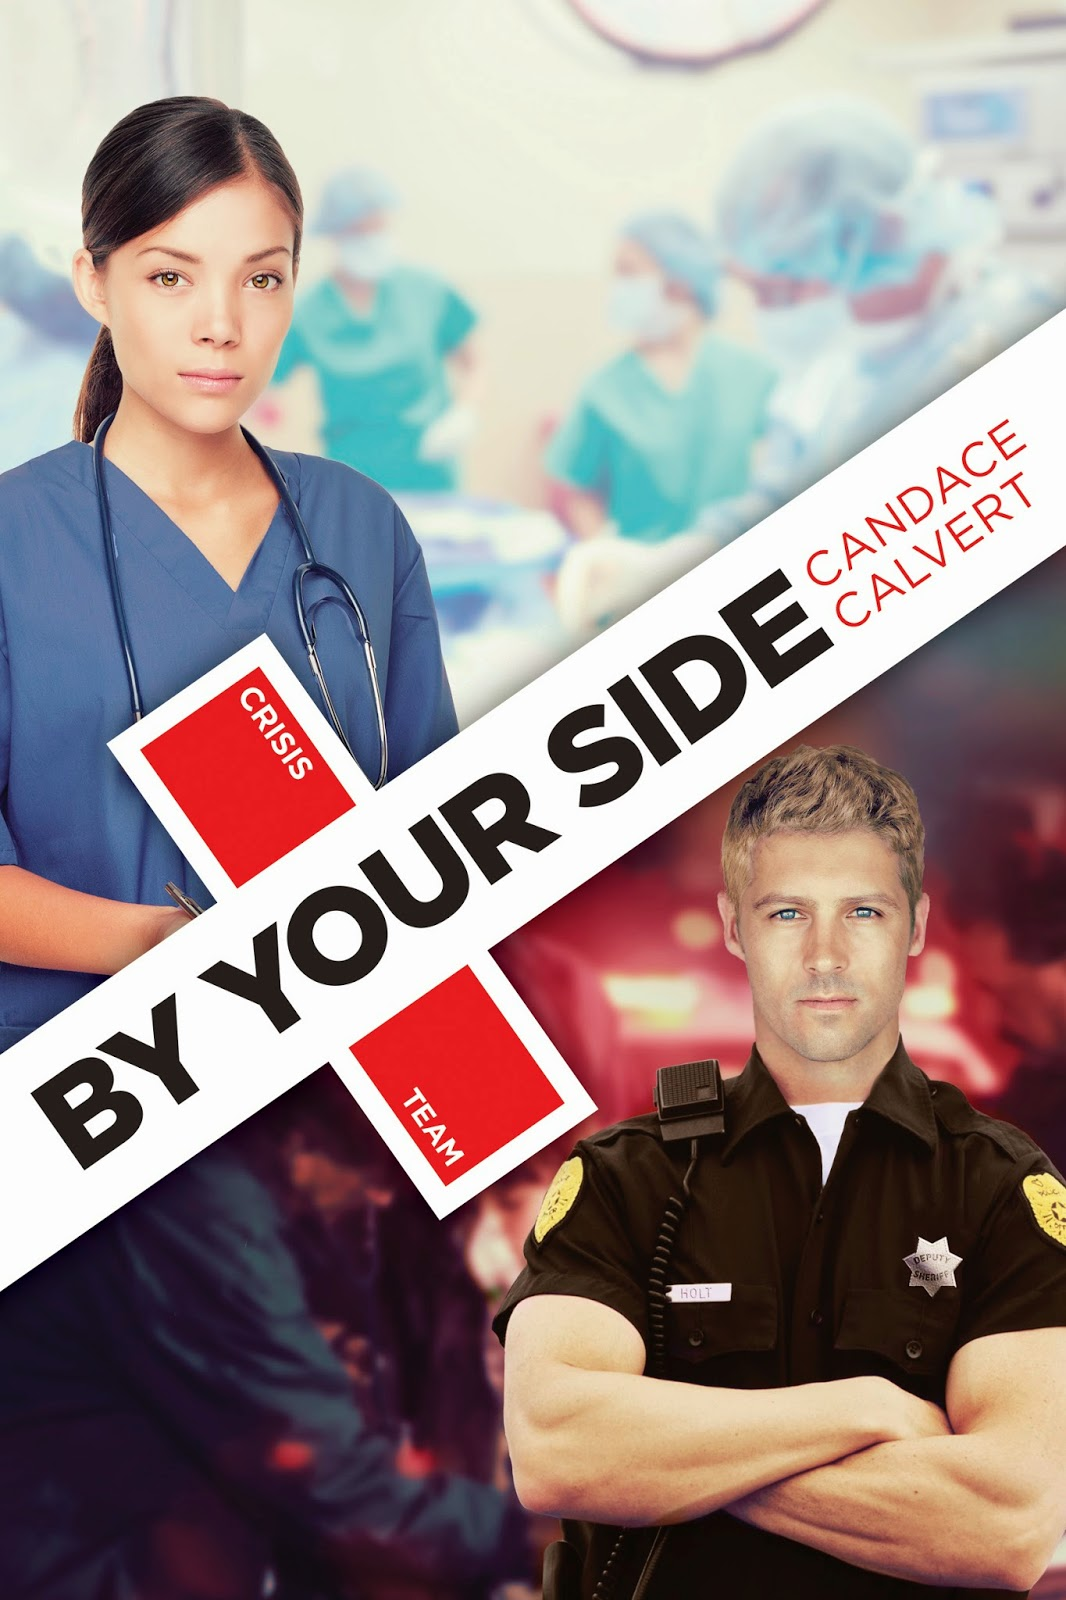 By Your Side (Crisis Team, Book 1) by Candace Calvert